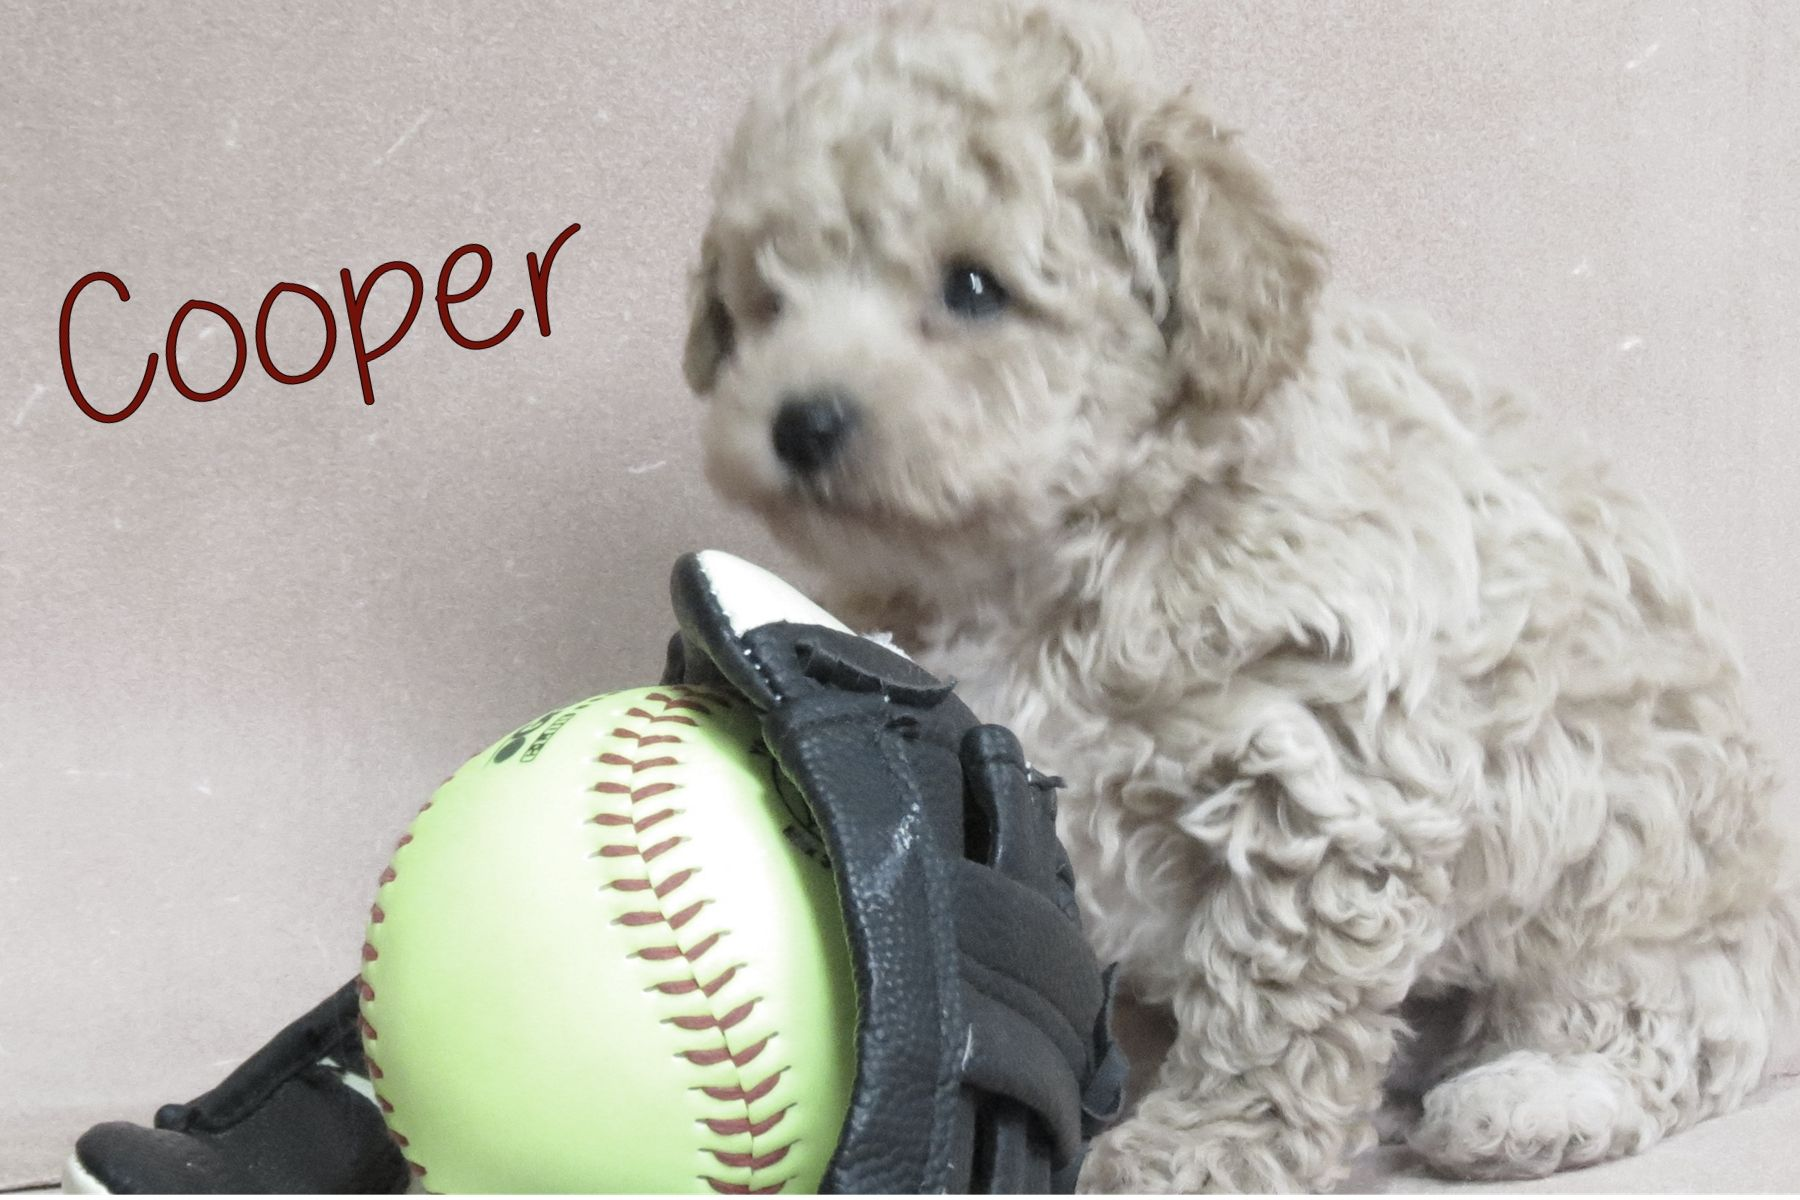 Cooper Male Shihpoo Puppy From Ewing Illinois Find Cute Mixed